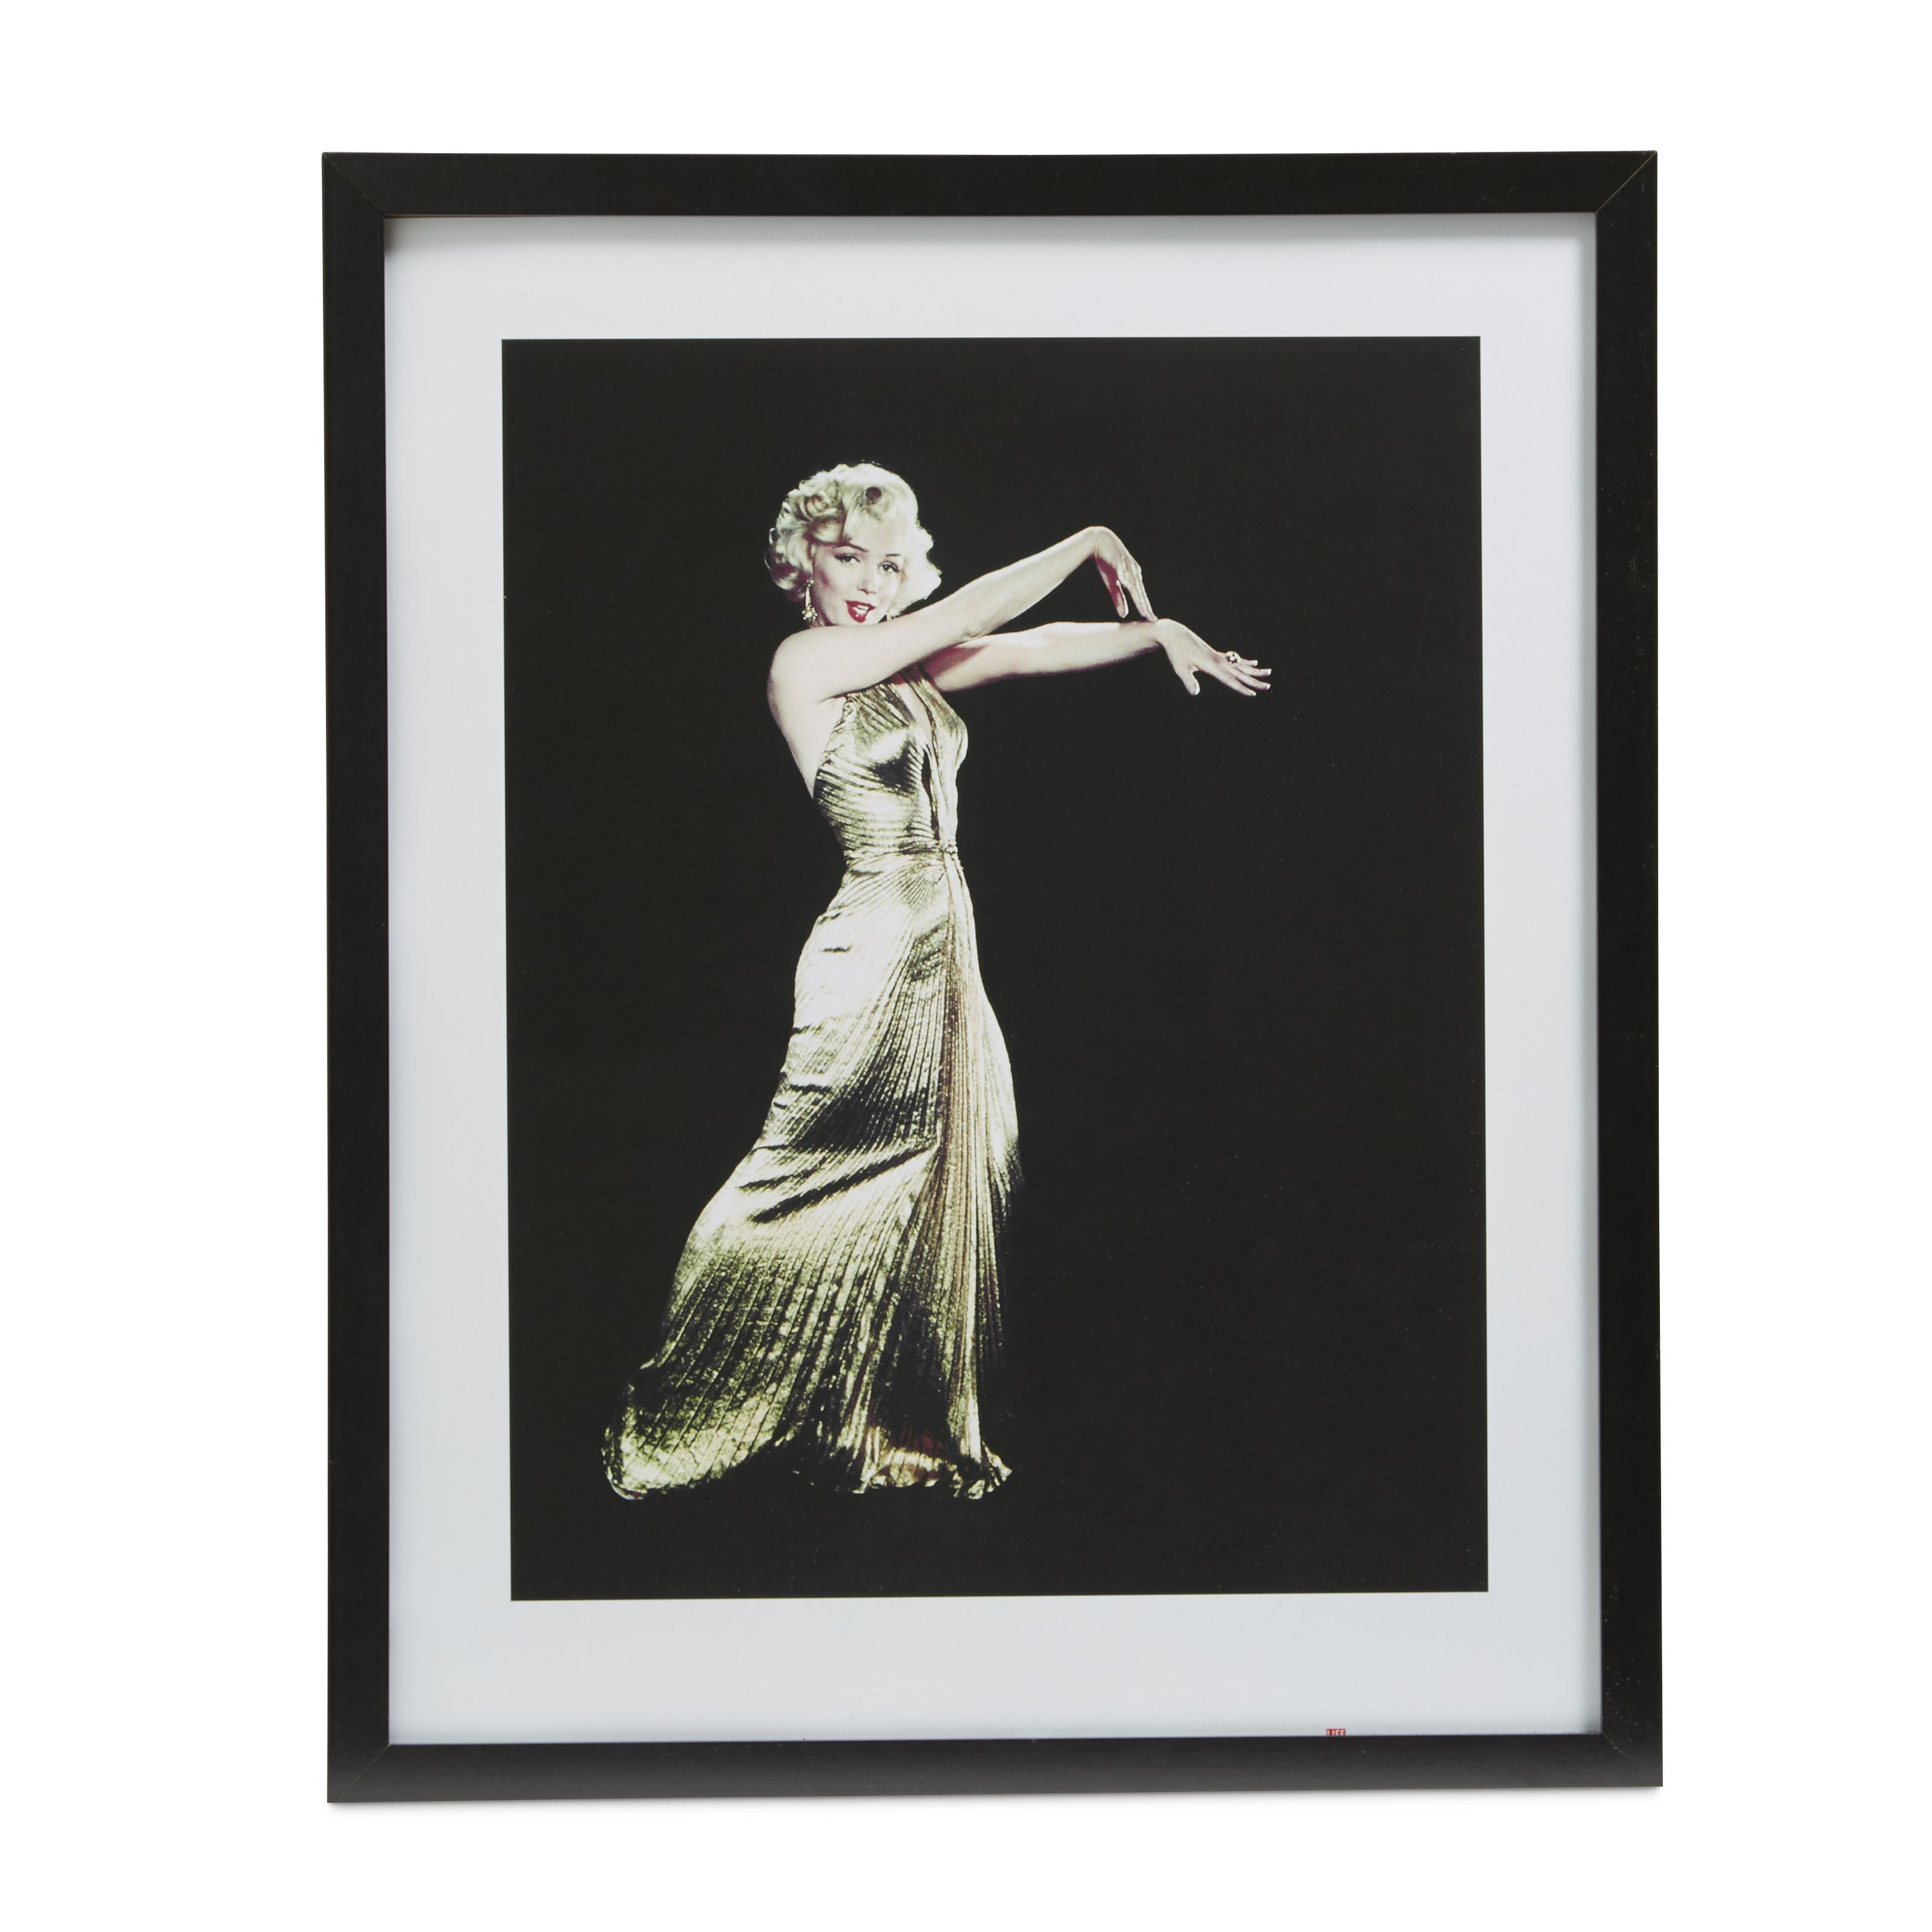 Marilyn monroe gold dress gold wall art w540mm h440mm for Kitchen cabinets lowes with wall art marilyn monroe